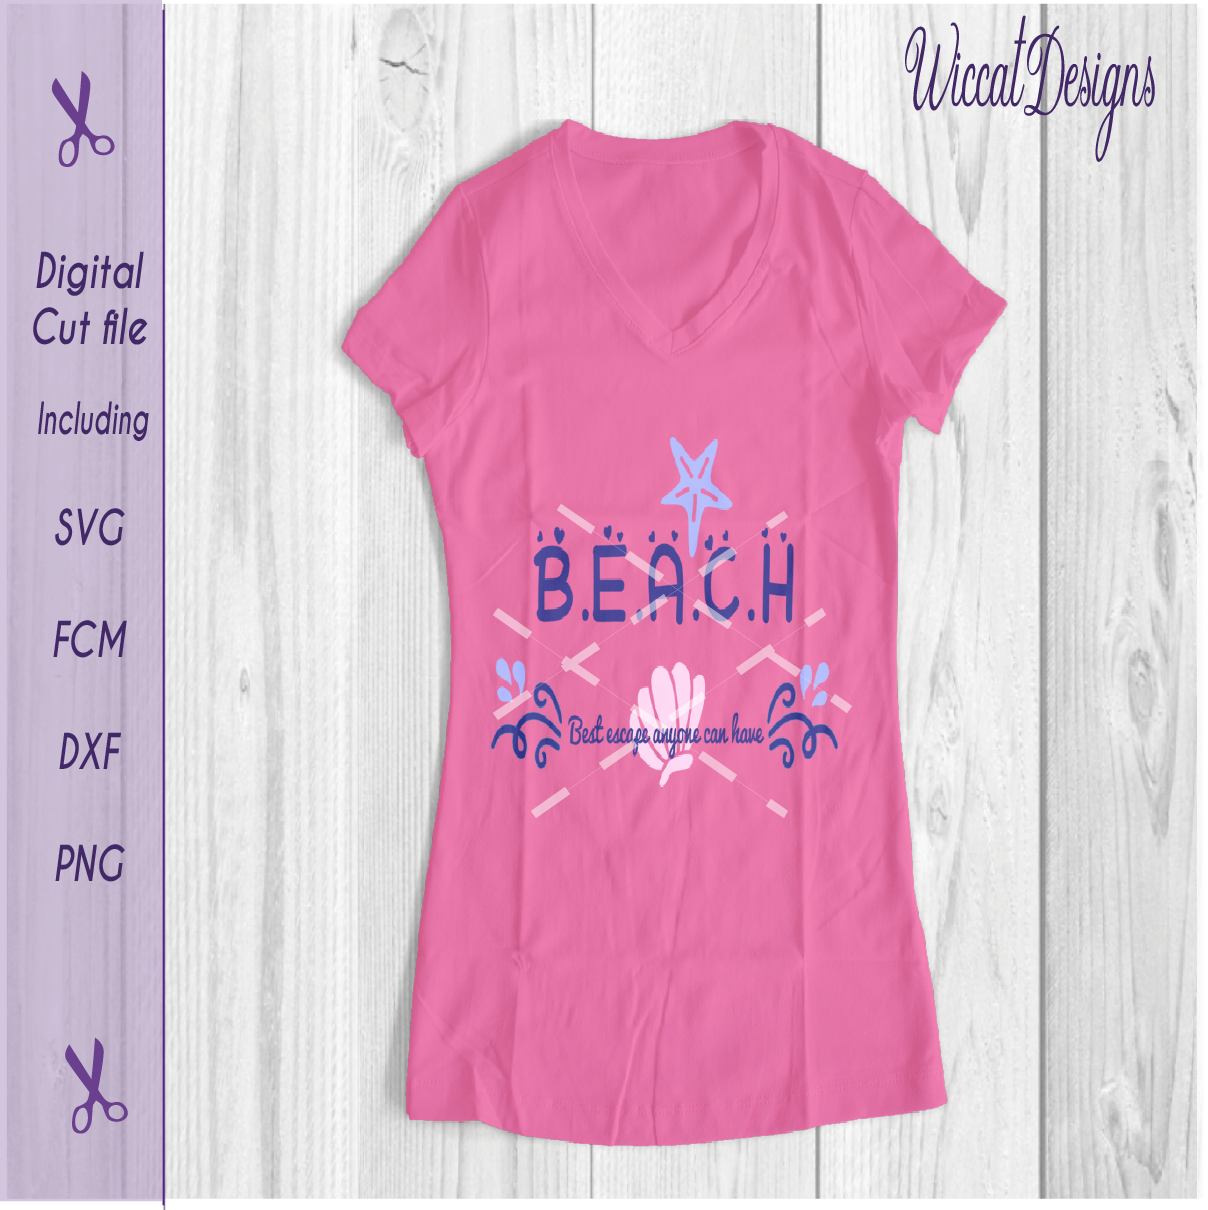 Download Free Beach Quote Graphic By Wiccatdesigns Creative Fabrica for Cricut Explore, Silhouette and other cutting machines.